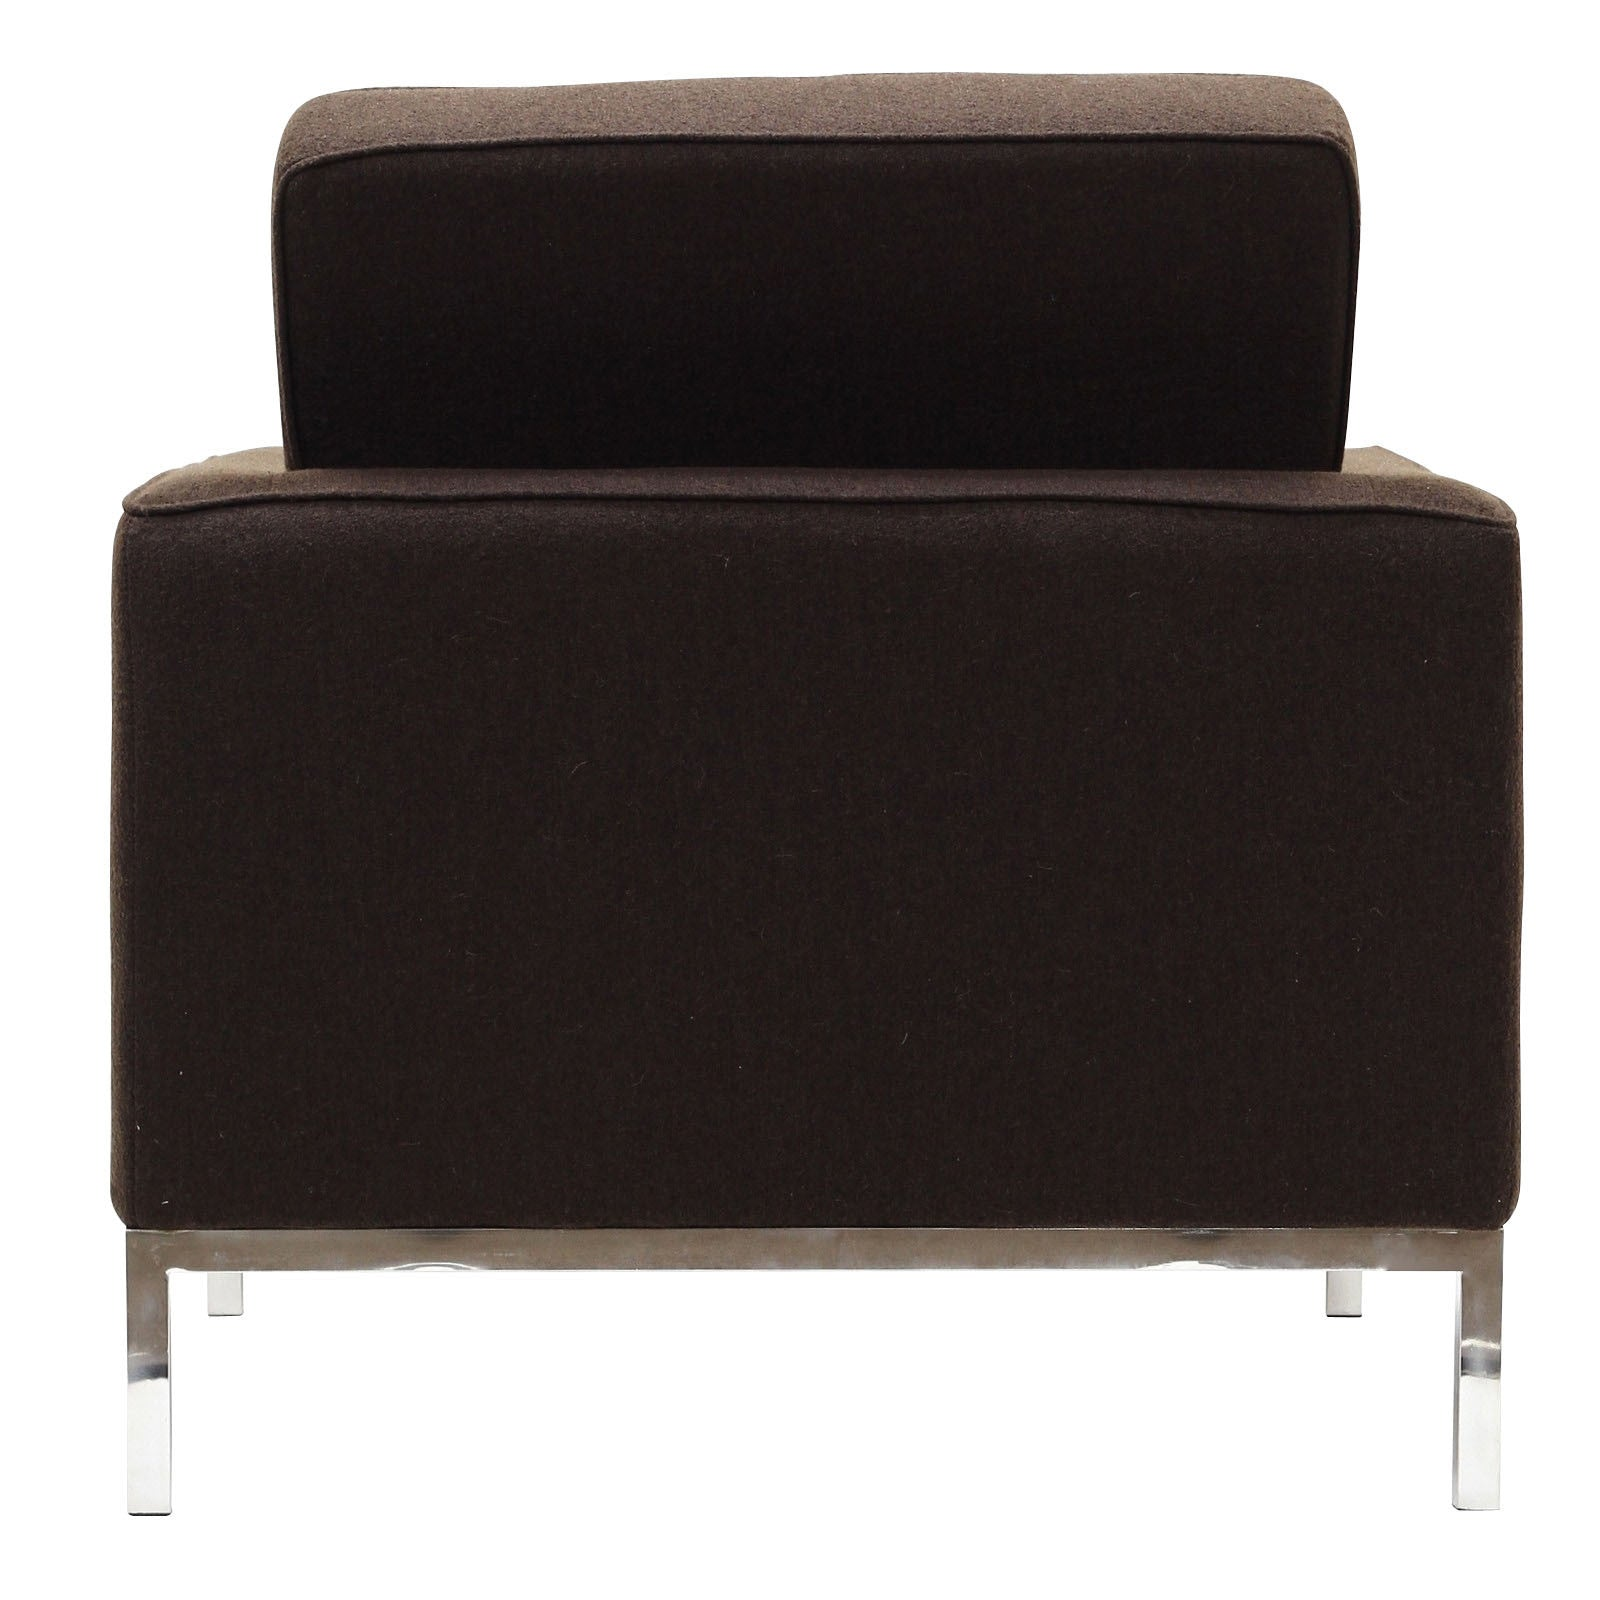 Superb ... Florence Knoll Armchair Reproduction (Fabric)   The Modern Source   4  ...